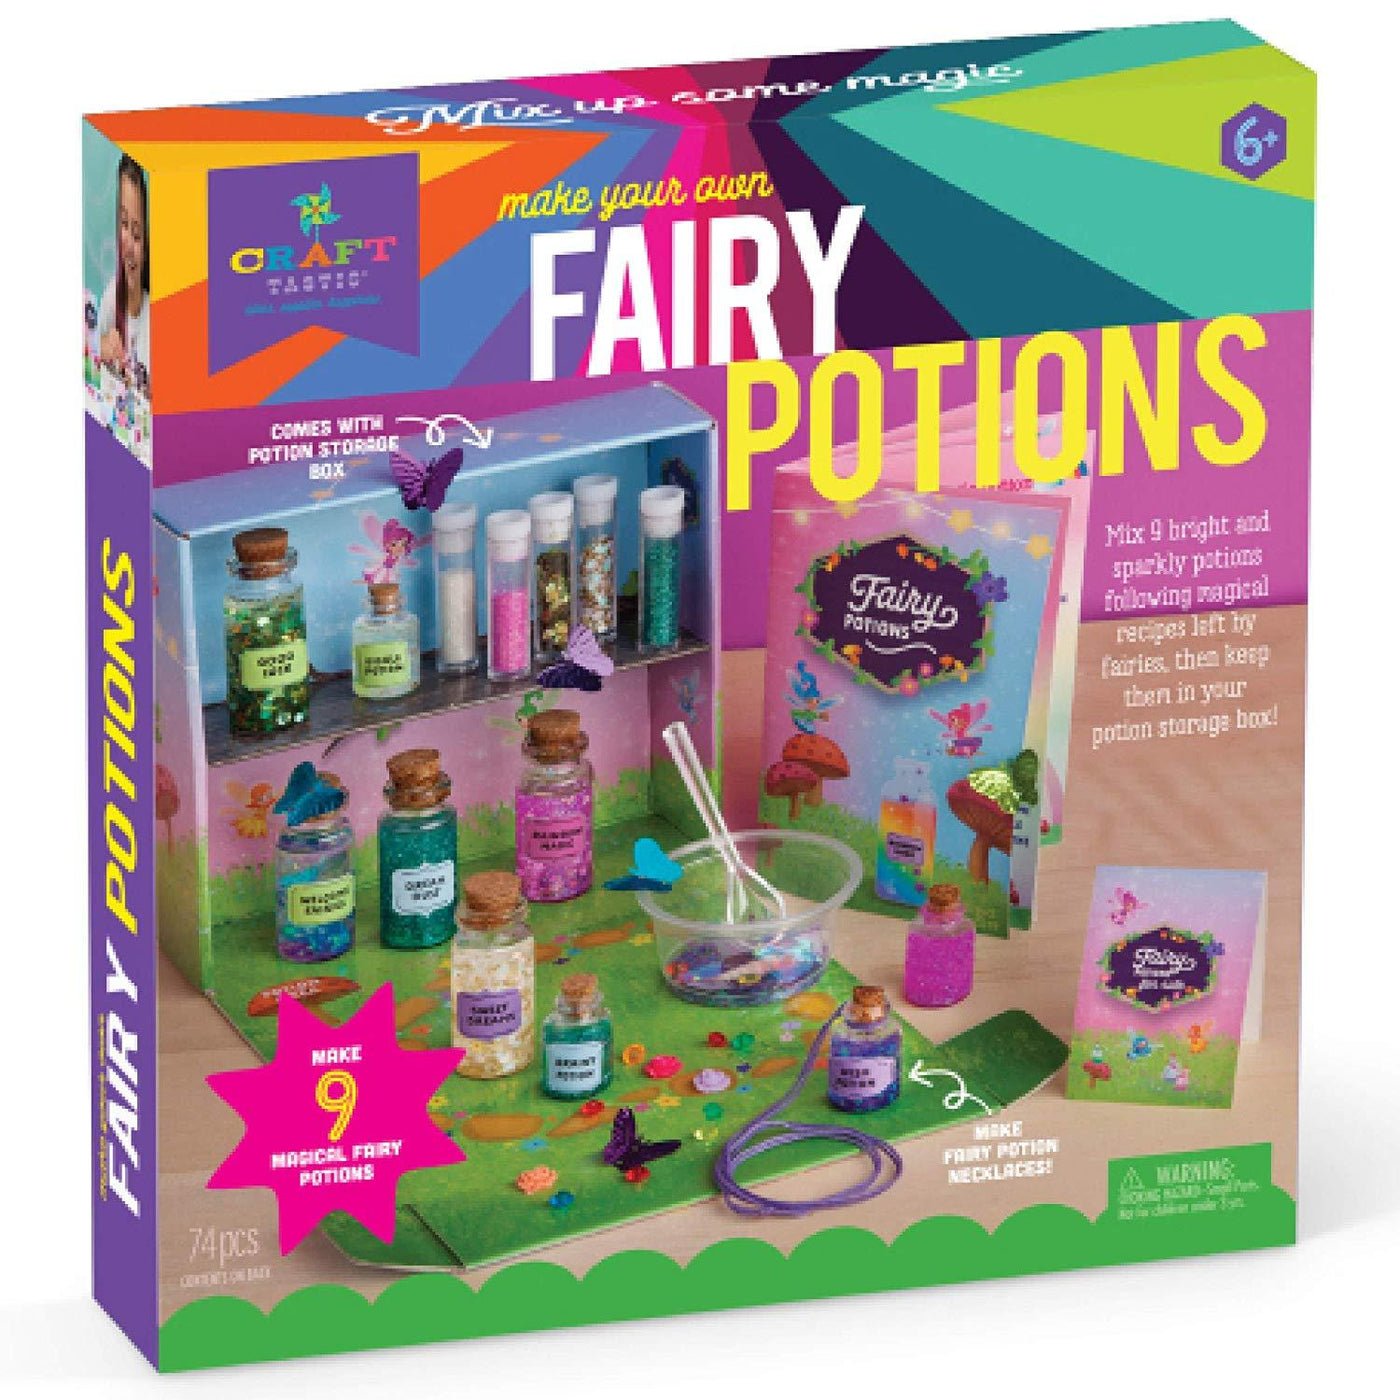 Make your own Fairy Potions Kit